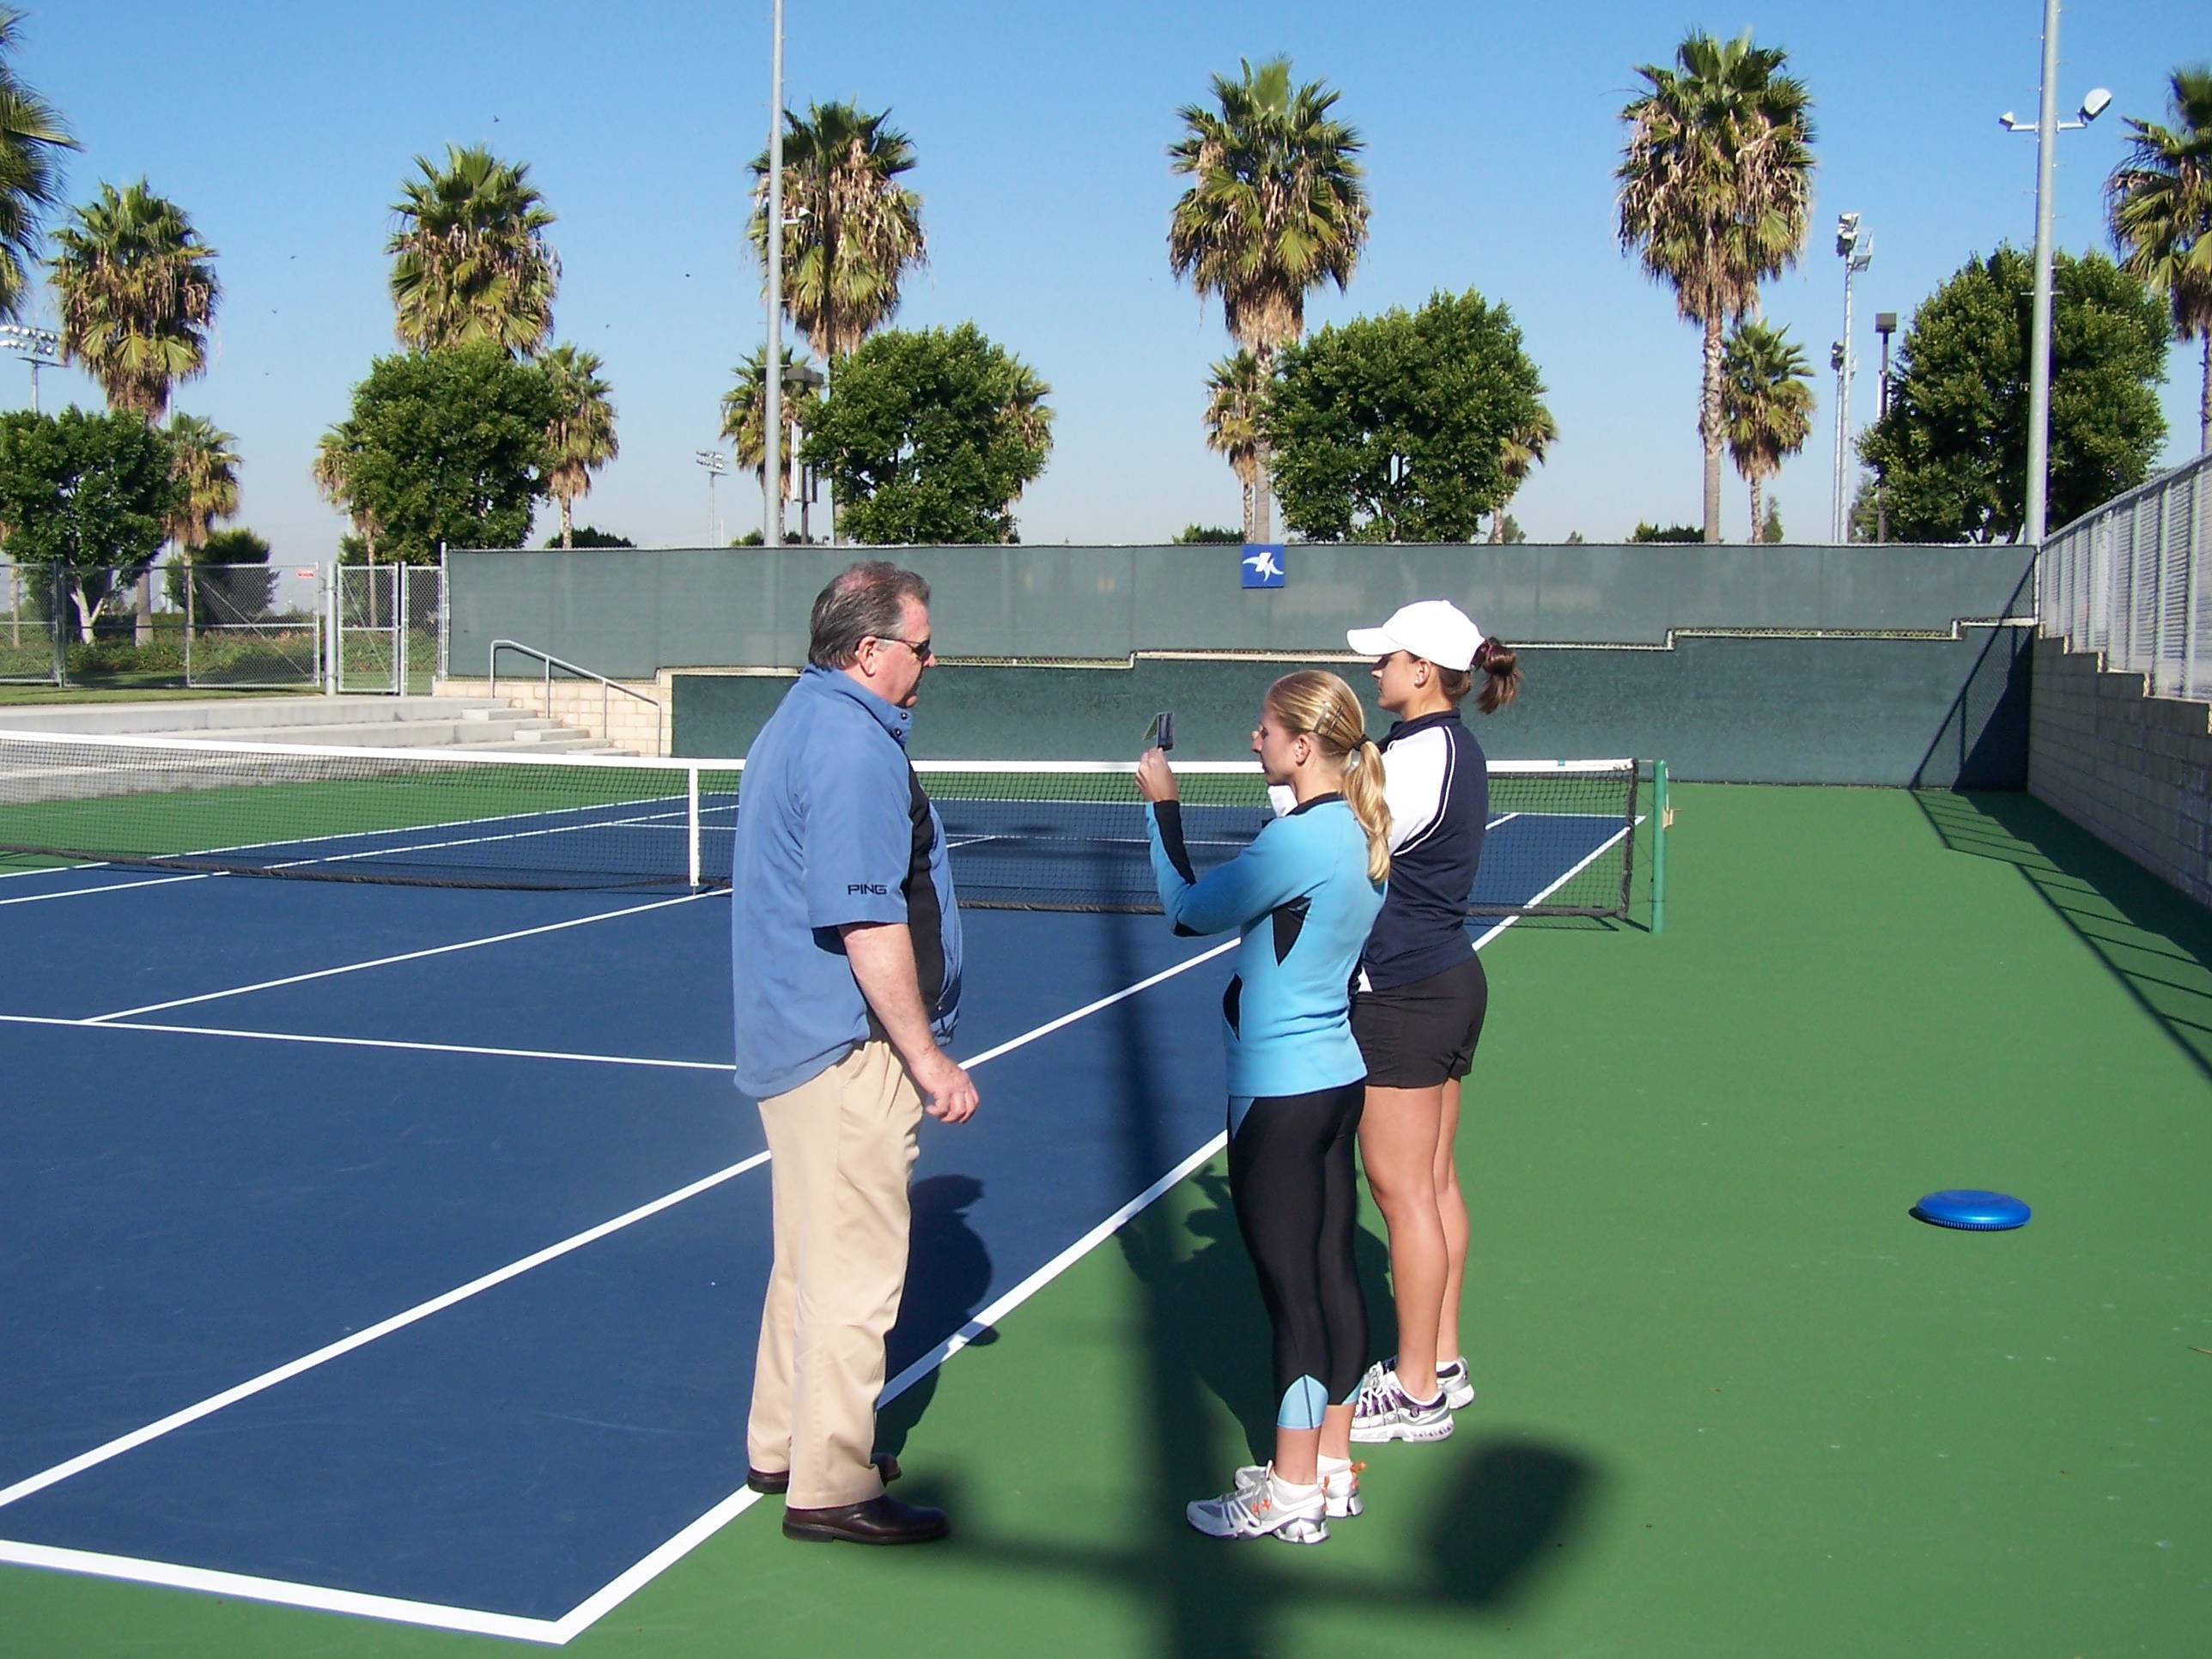 tennis sports vision enhancement Los Angeles and San Diego